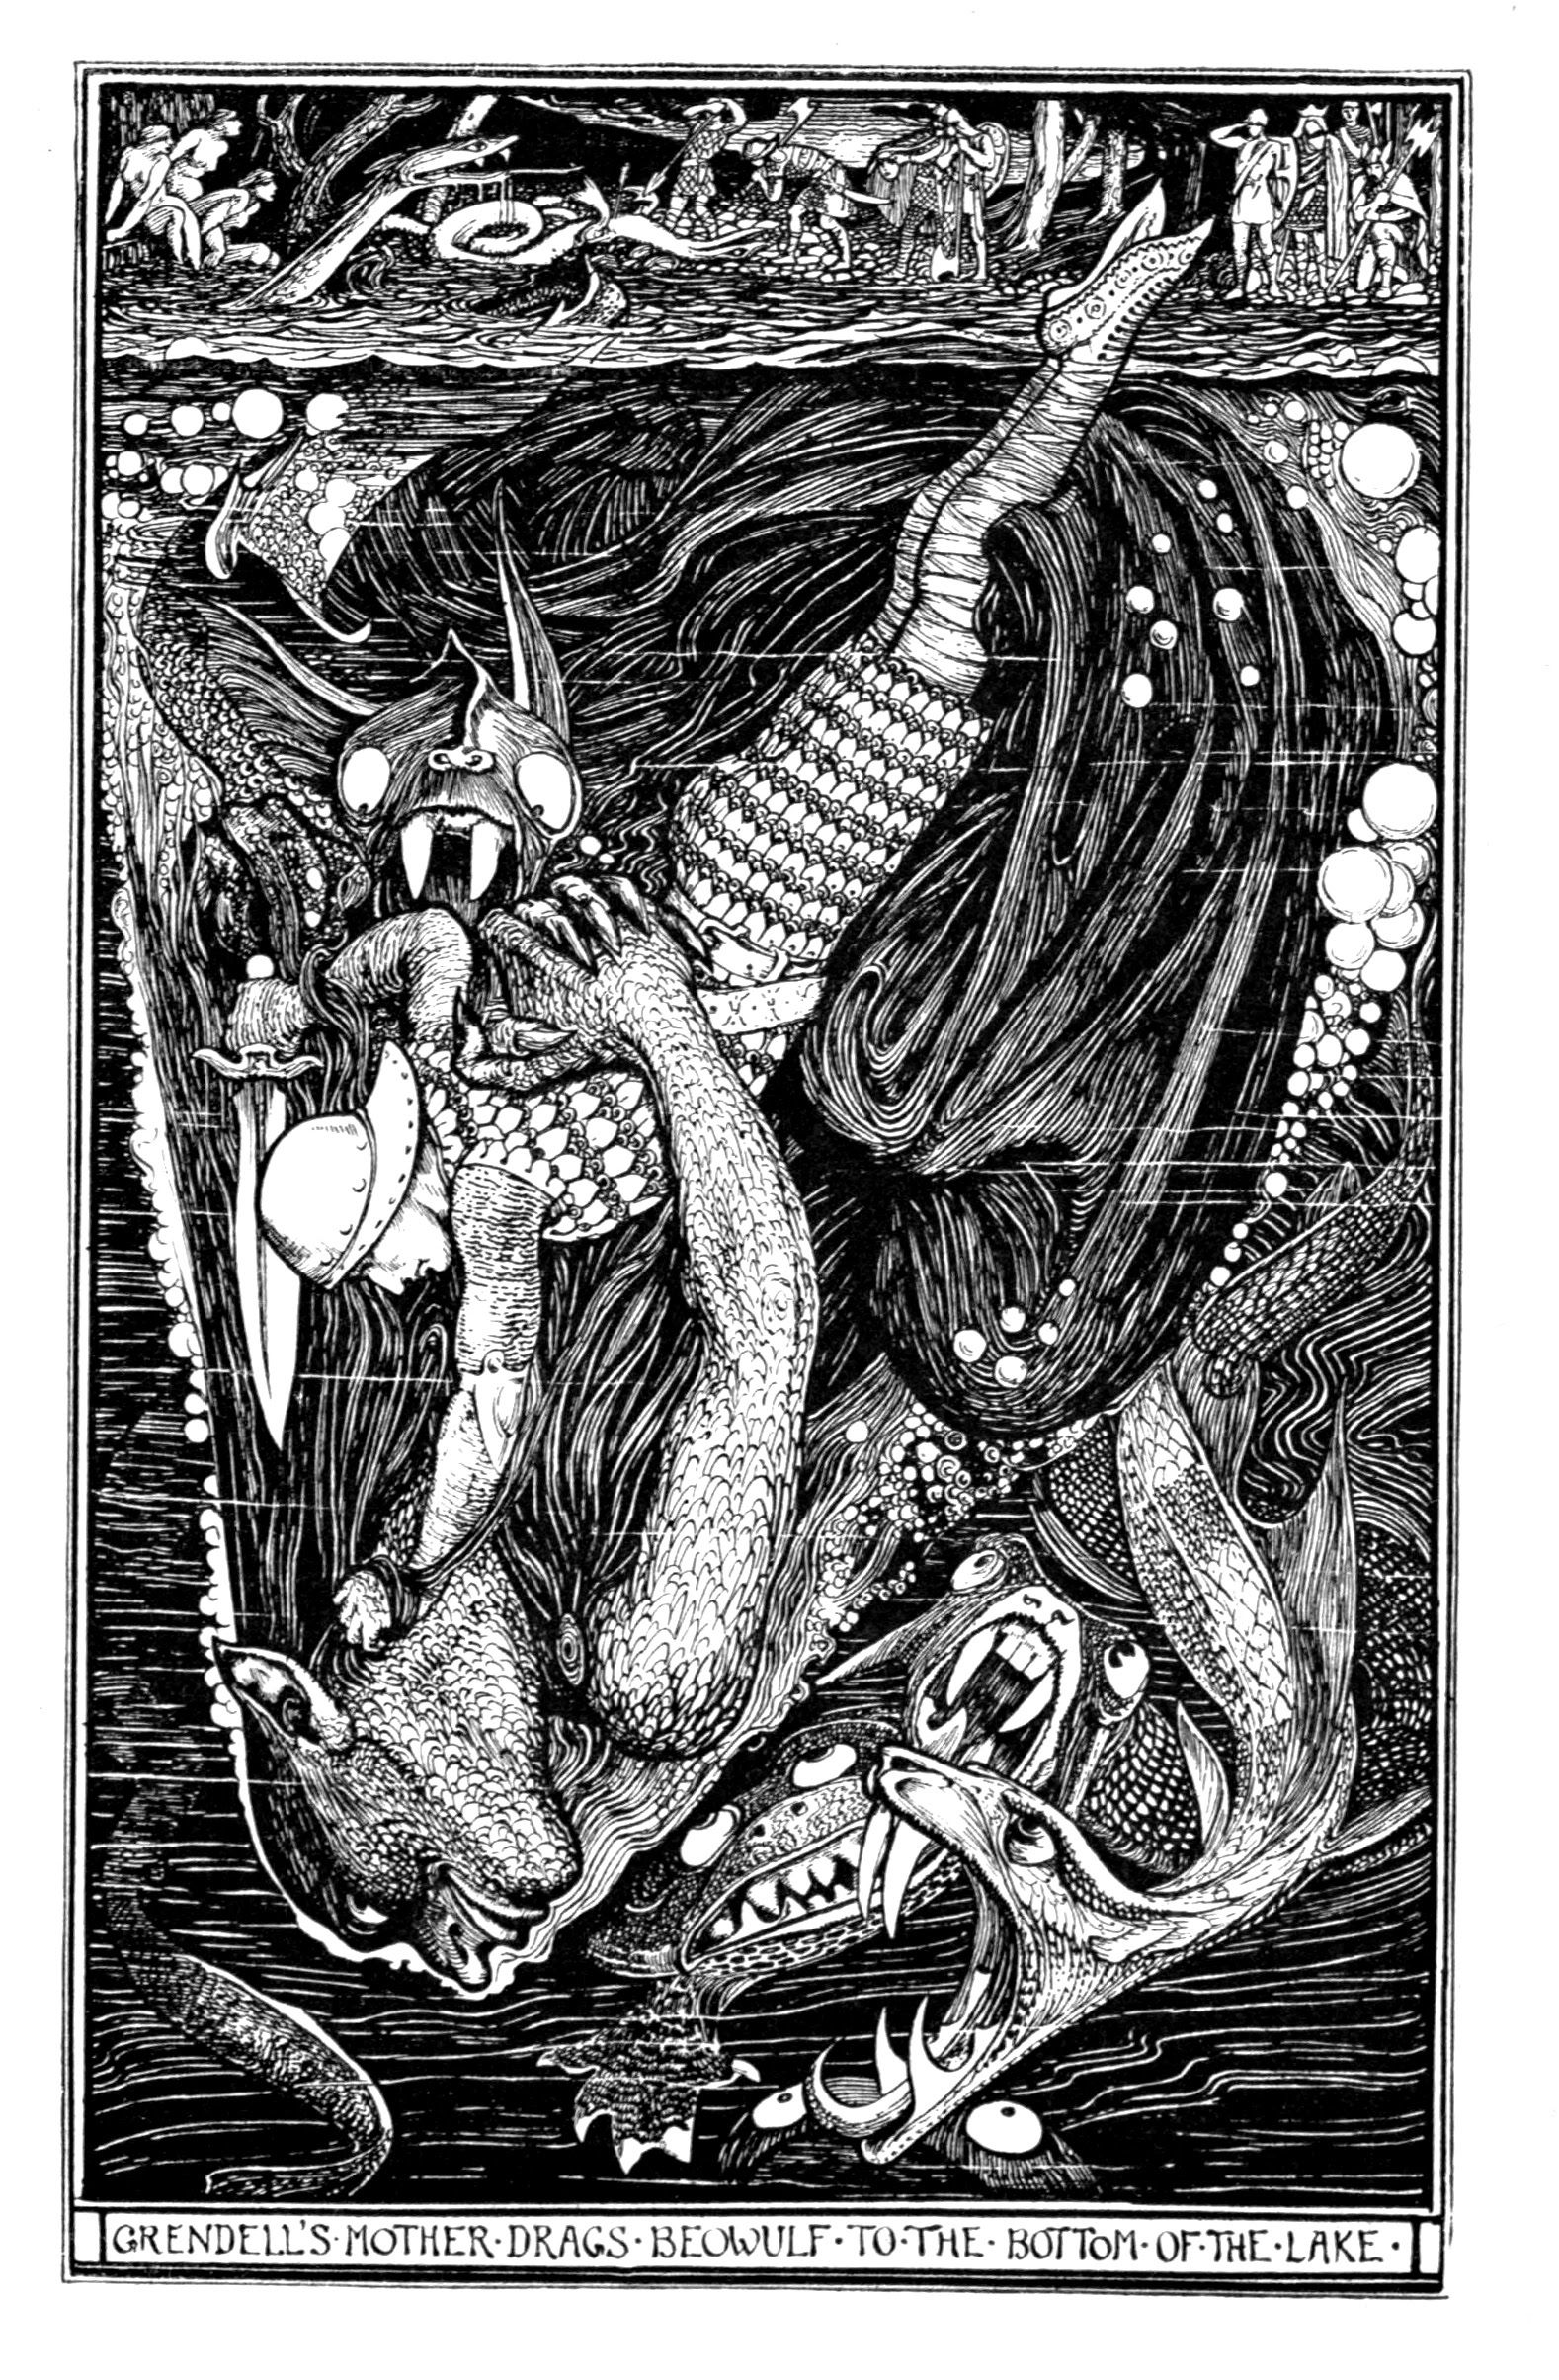 Henry Justice Ford - The red book of animal stories selected and edited by Andrew Lang, 1899 (illustration 7)